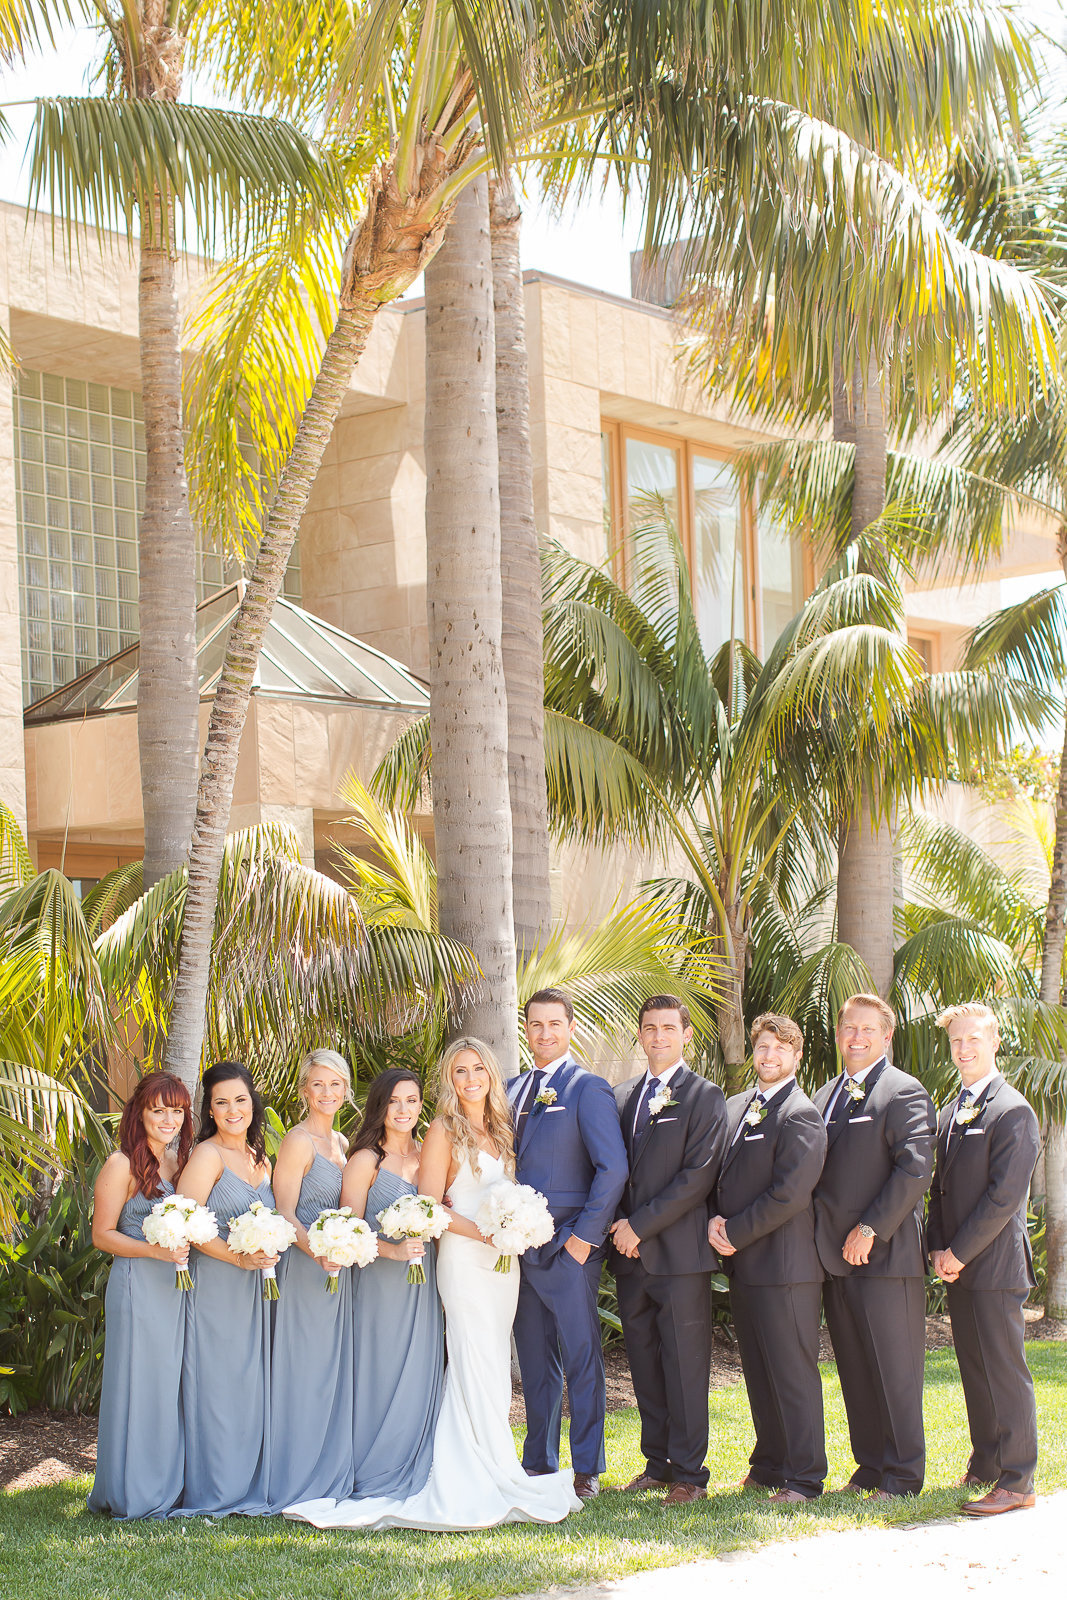 Newport Beach Caliornia Destination Wedding Theresa Bridget Photography-30